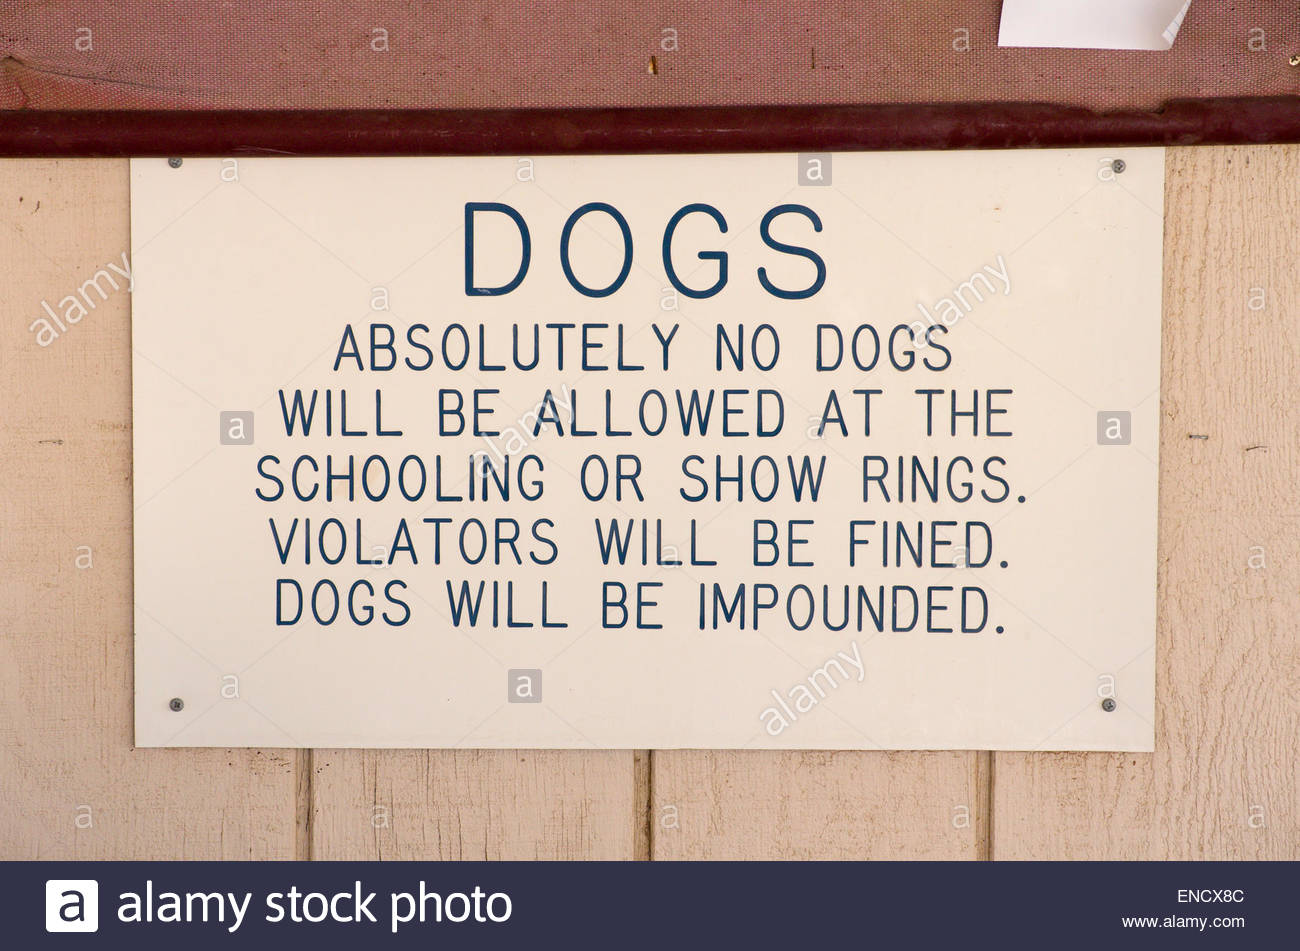 A sign prohibits dogs at an equestrian area at the Pima County Fairgrounds in Tucson, Arizona. - Stock Image